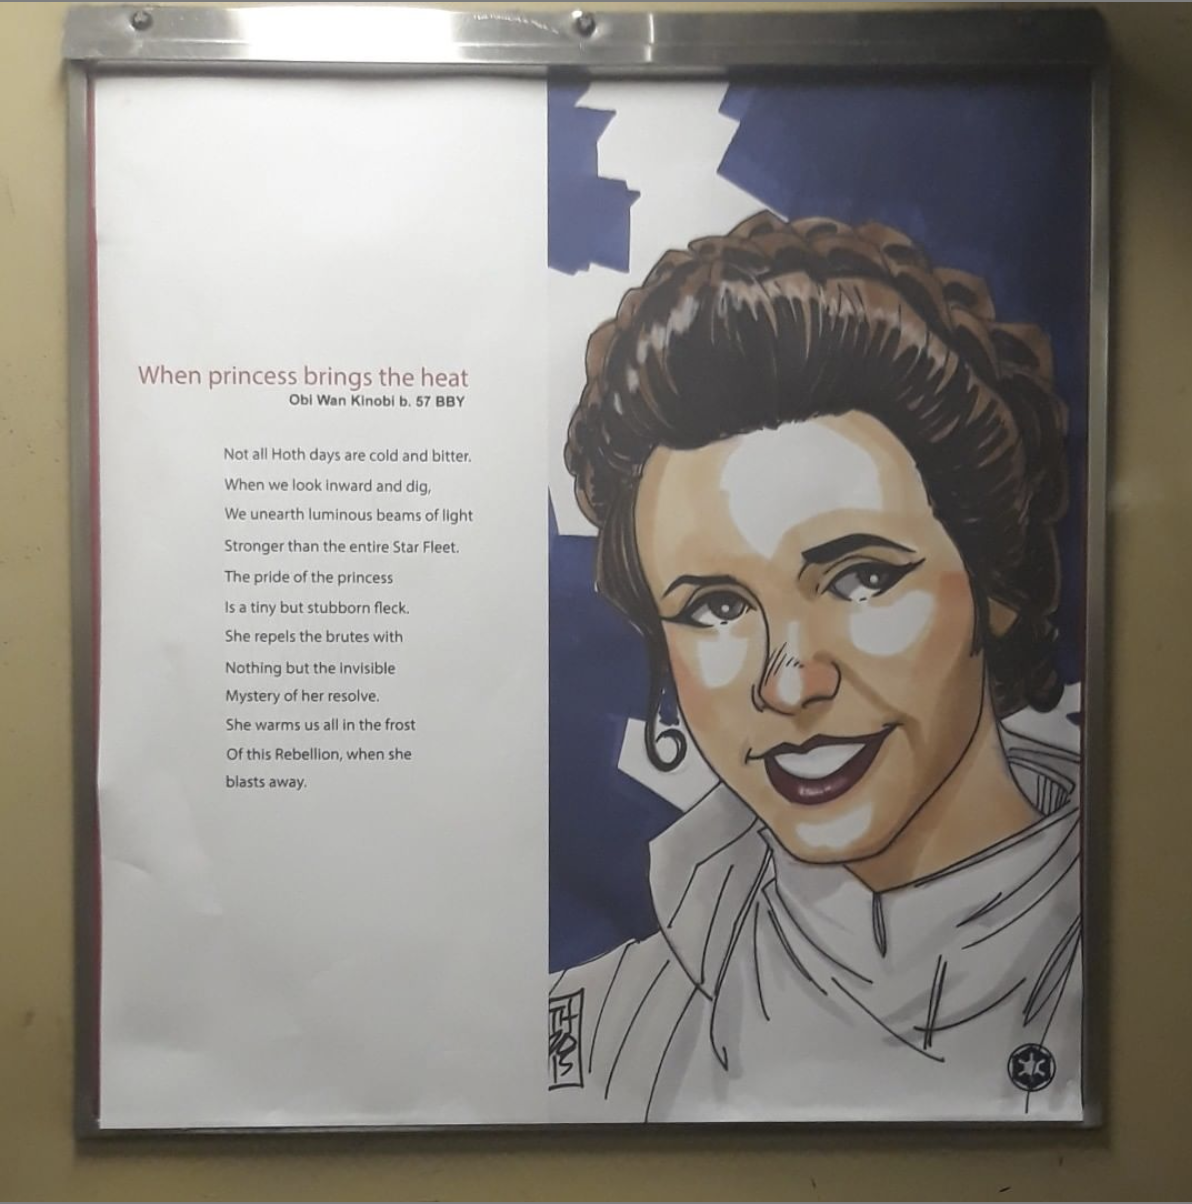 illustrational poster inside of an MTA subway cart of Princess Leia from the Star Wars films